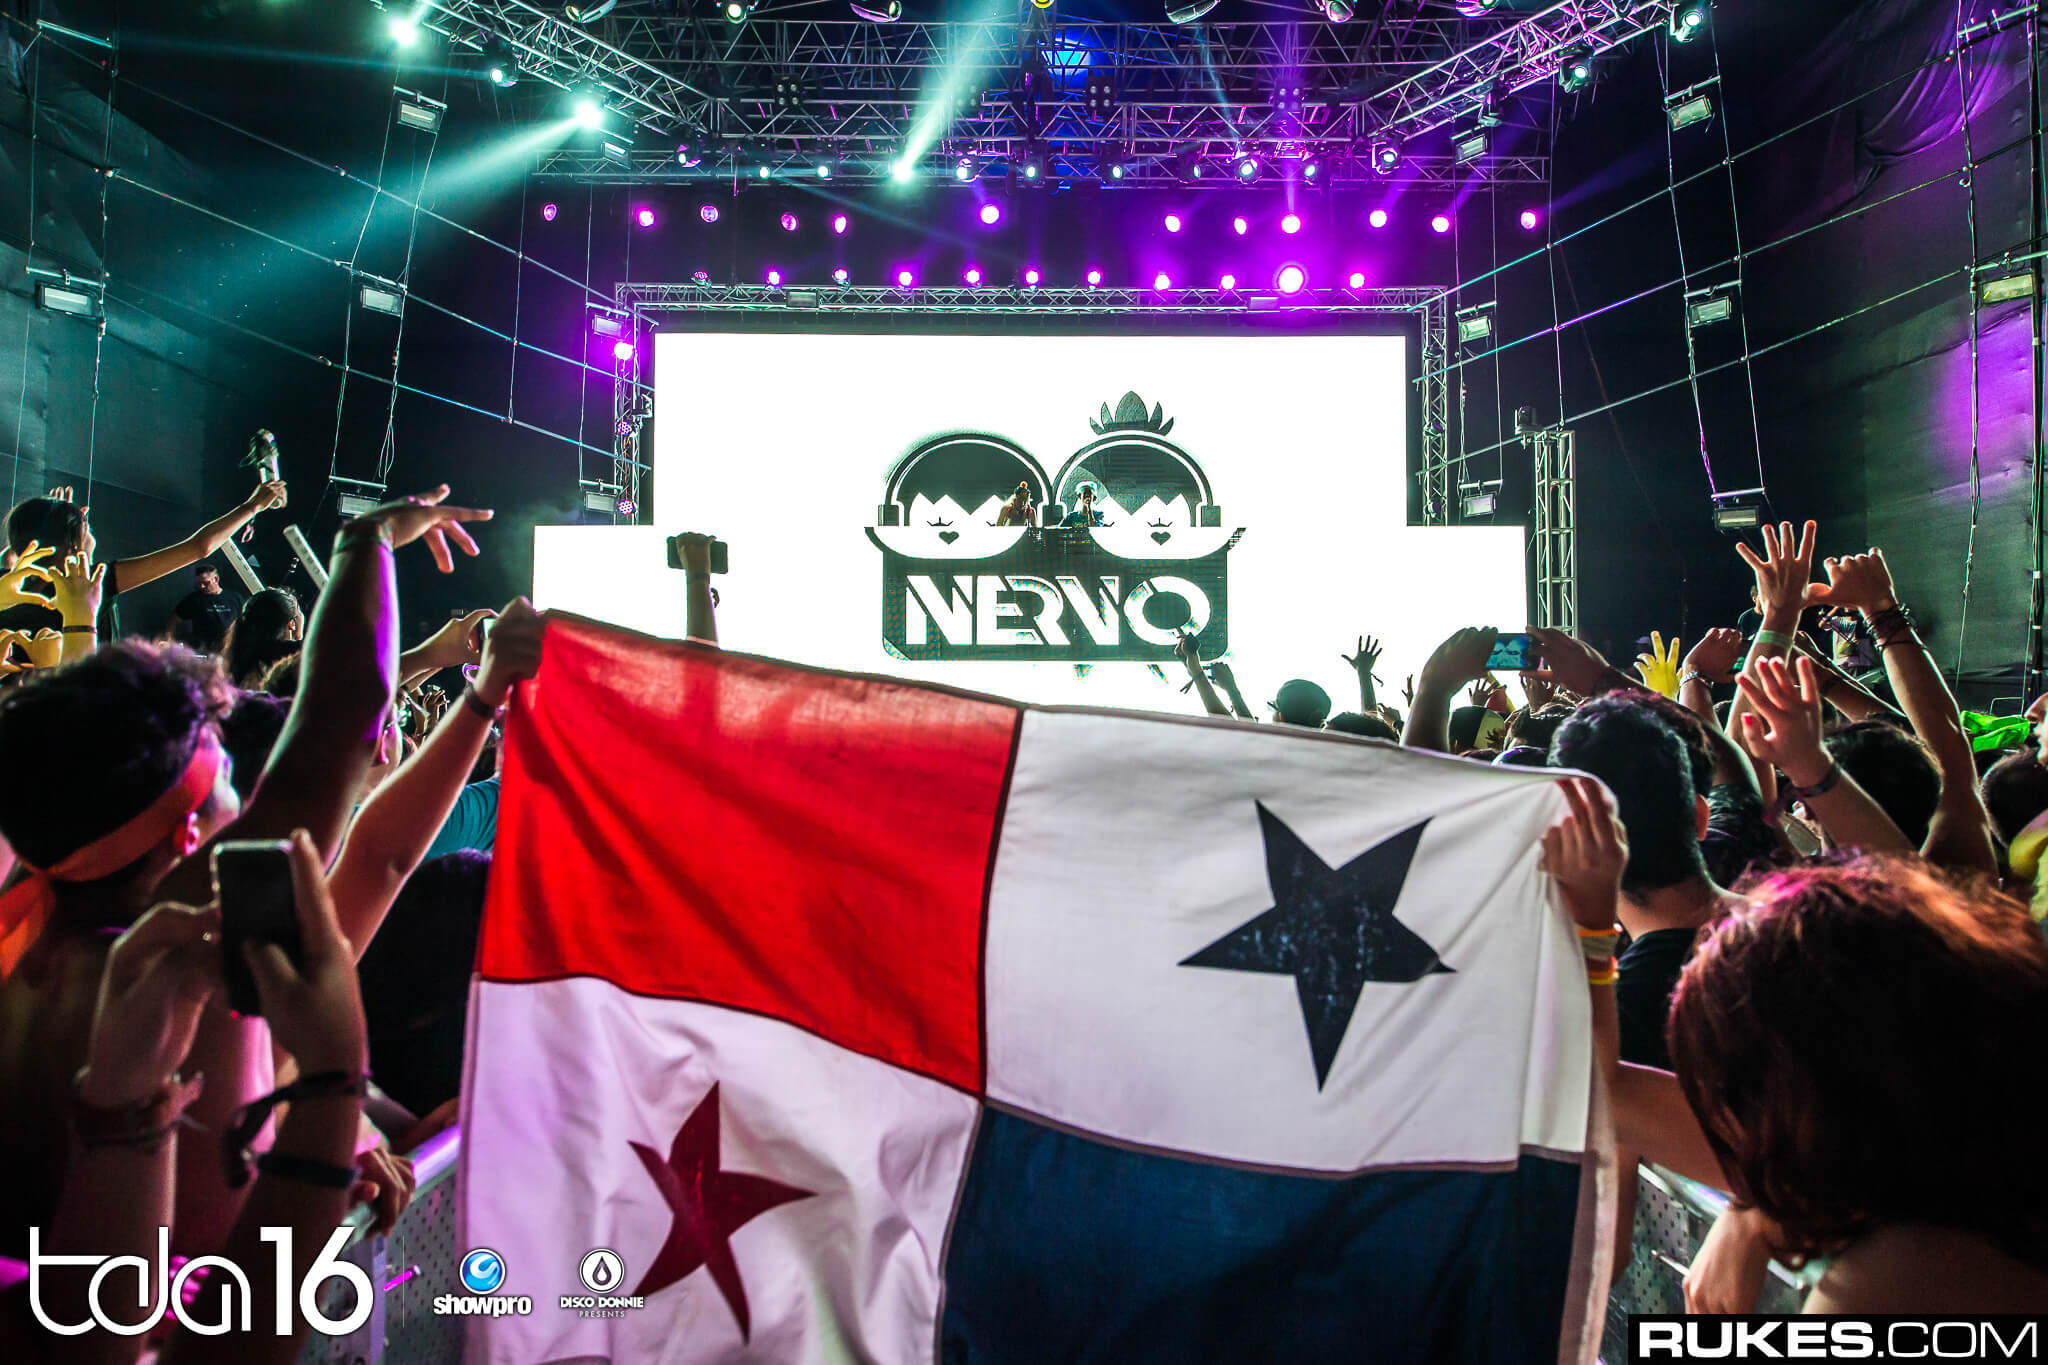 NERVO performing at The Day After Festival 2016. Photo by Rukes.